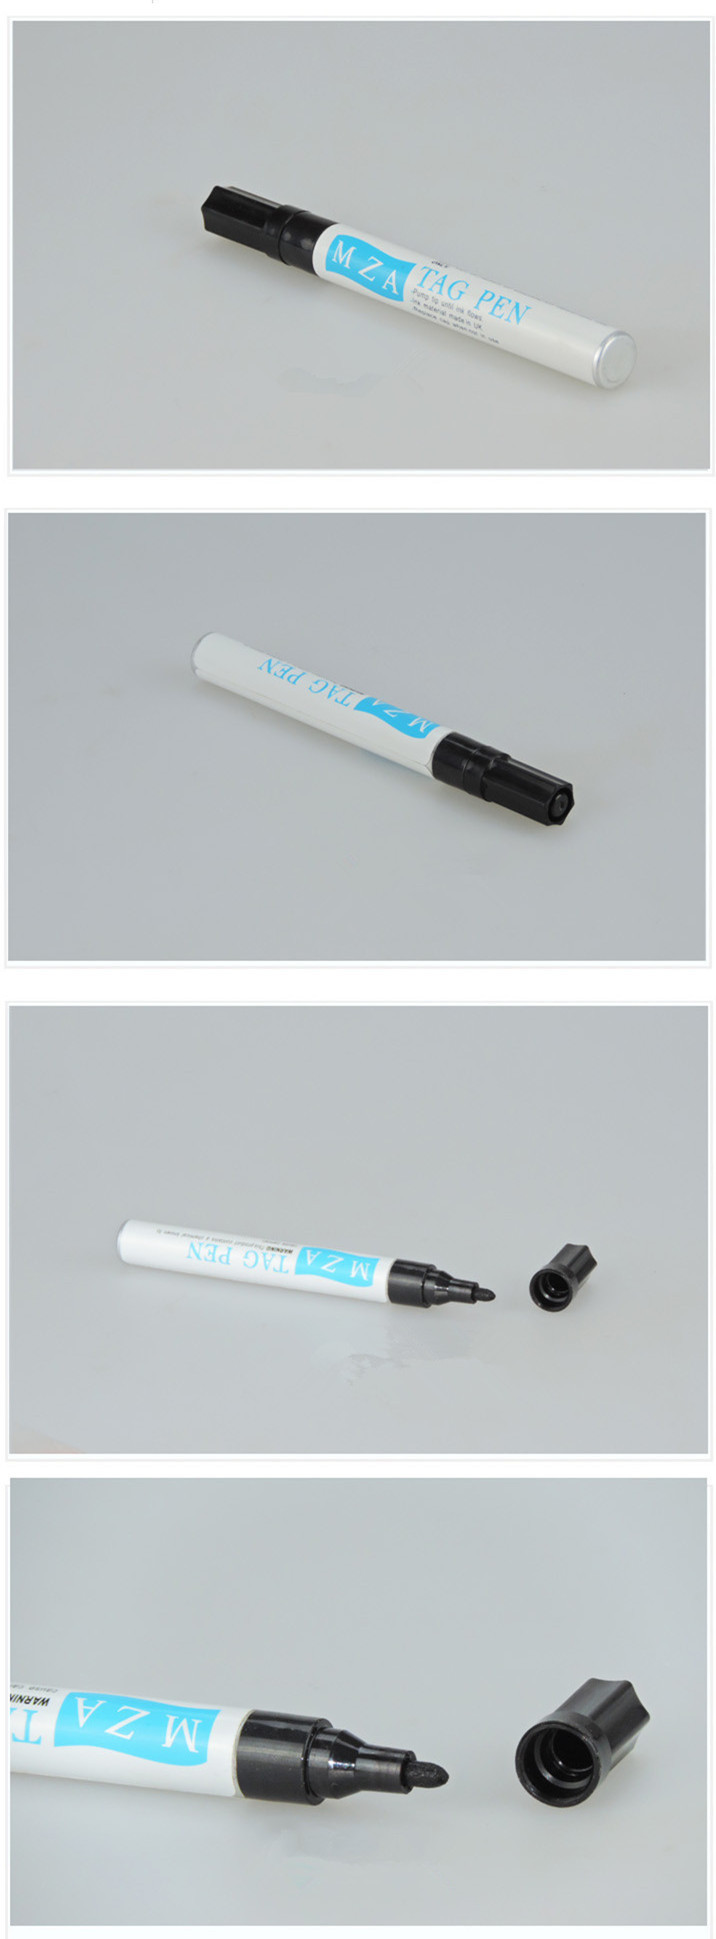 Animal ear tag marker pen